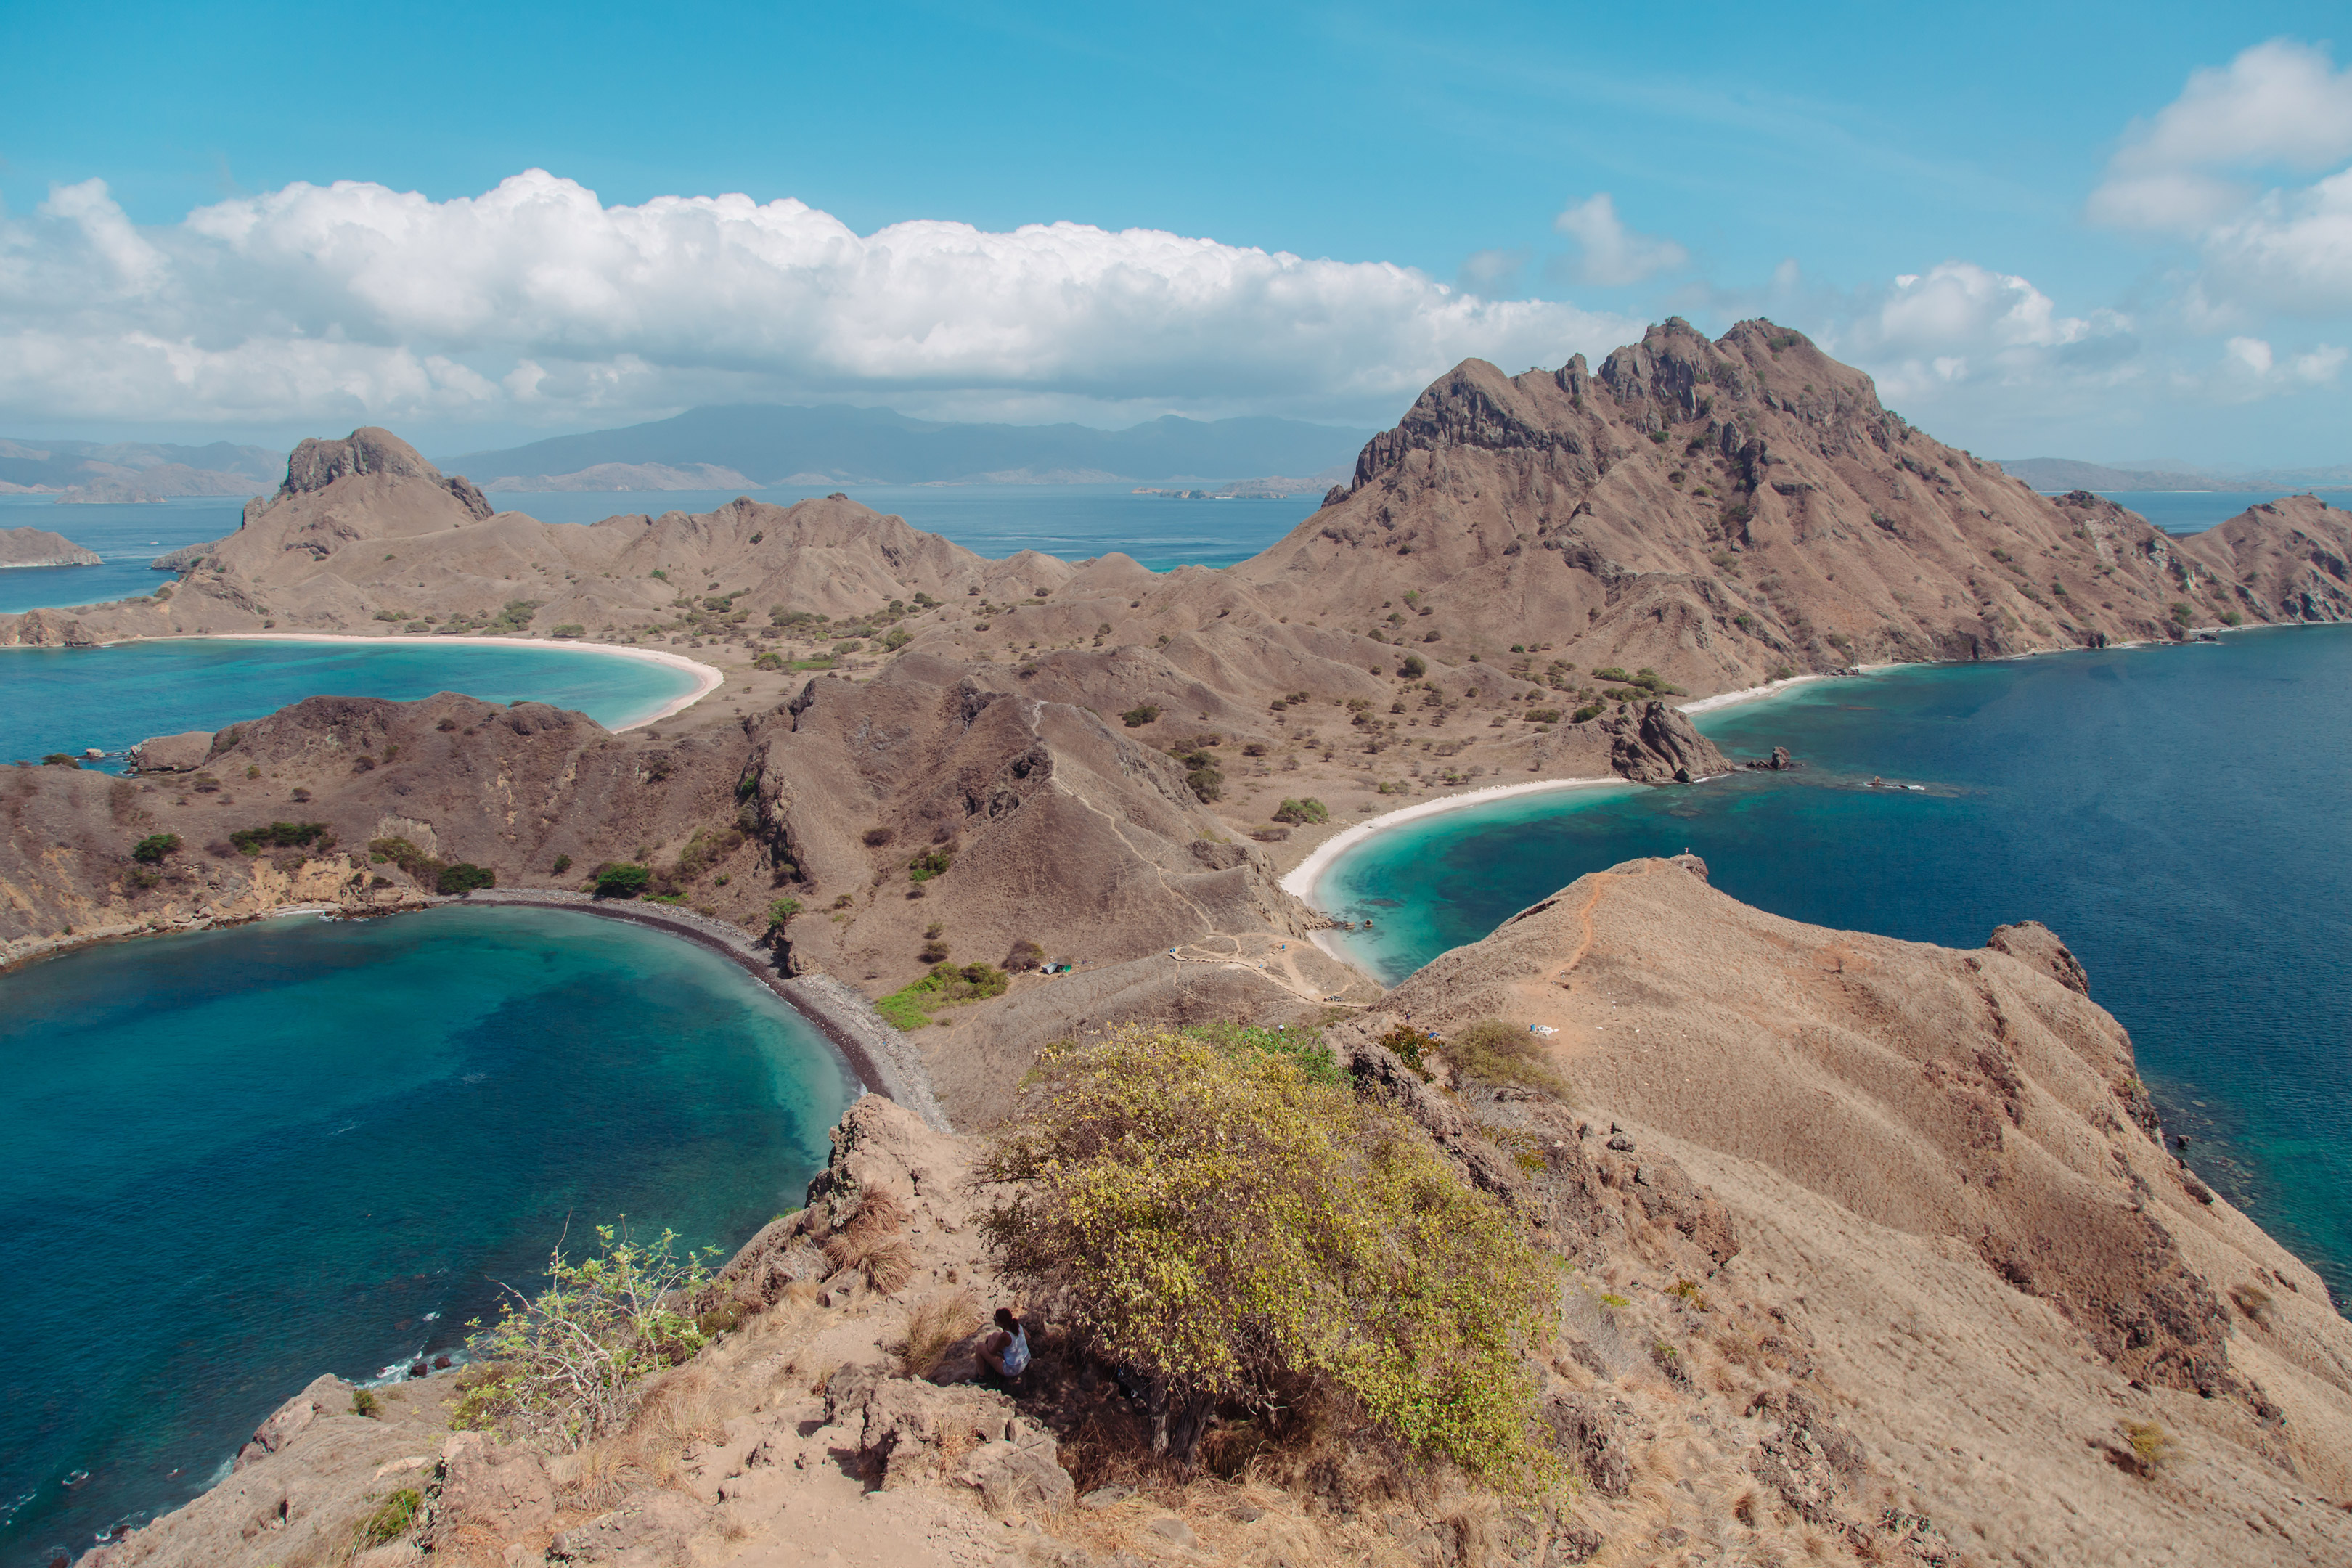 Indonesia Pictures Download Free Images on Unsplash